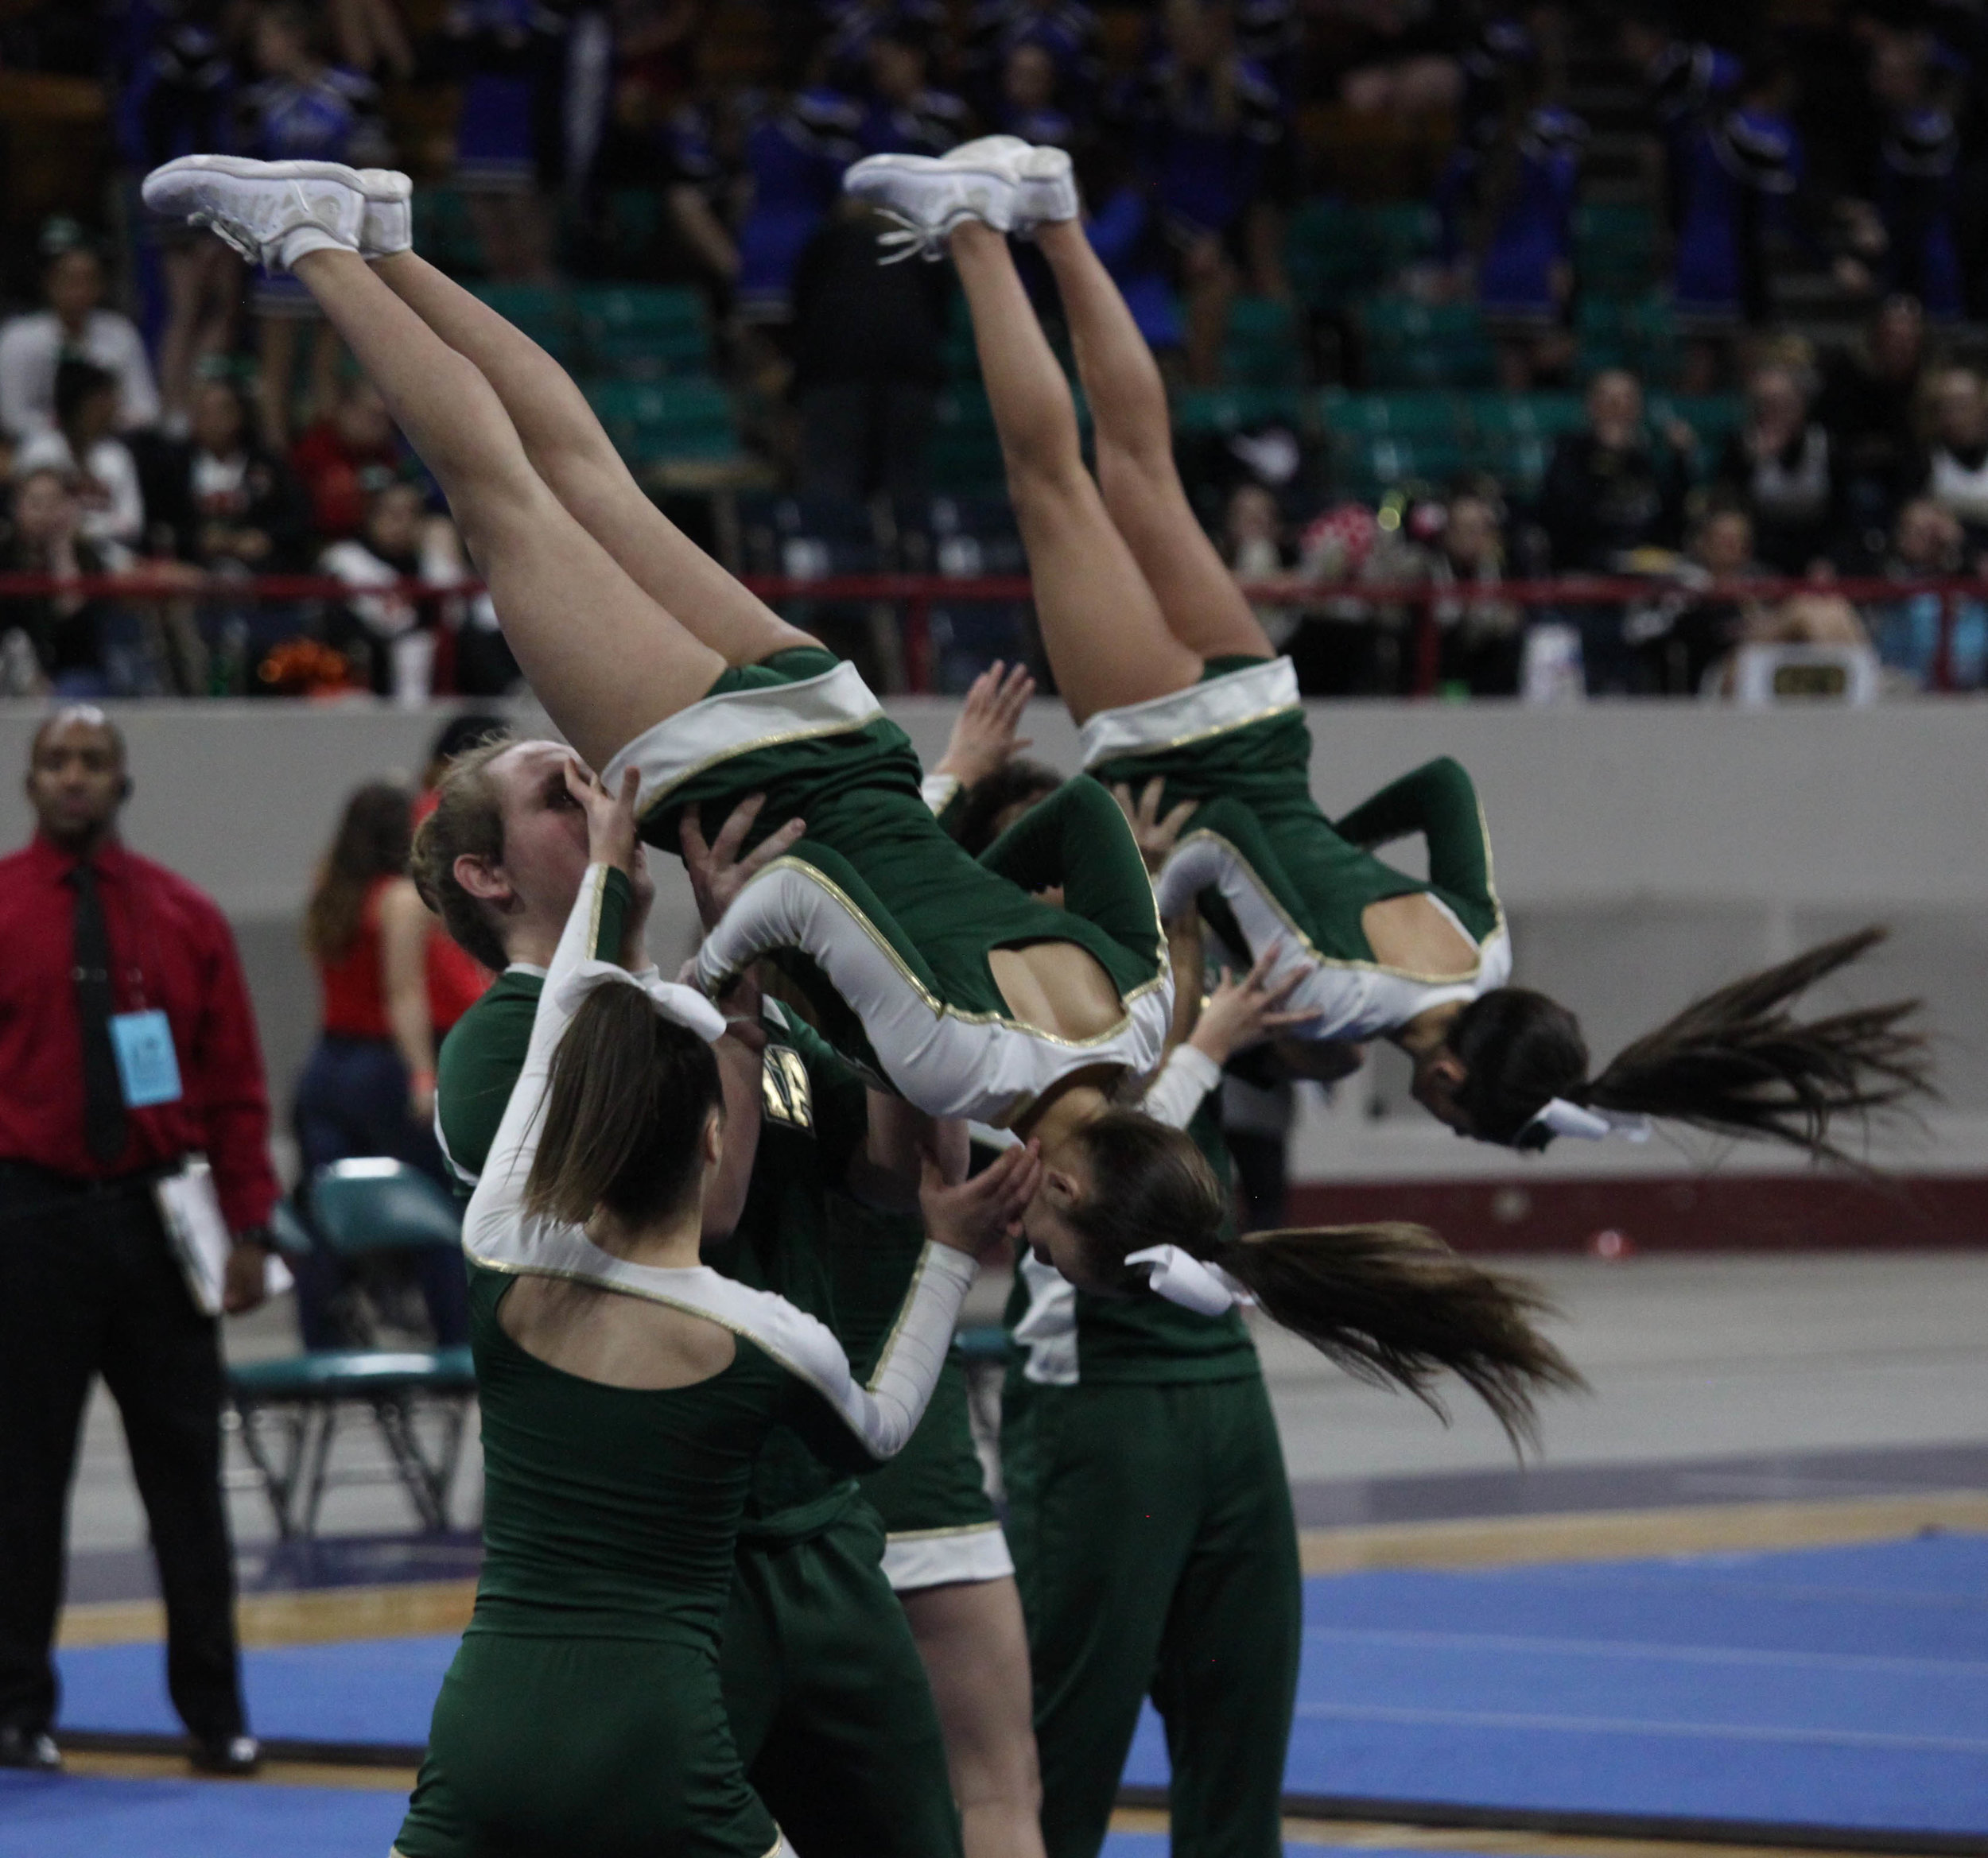 Vista cheerleaders preform during the state competition at the Denver Coleseum.